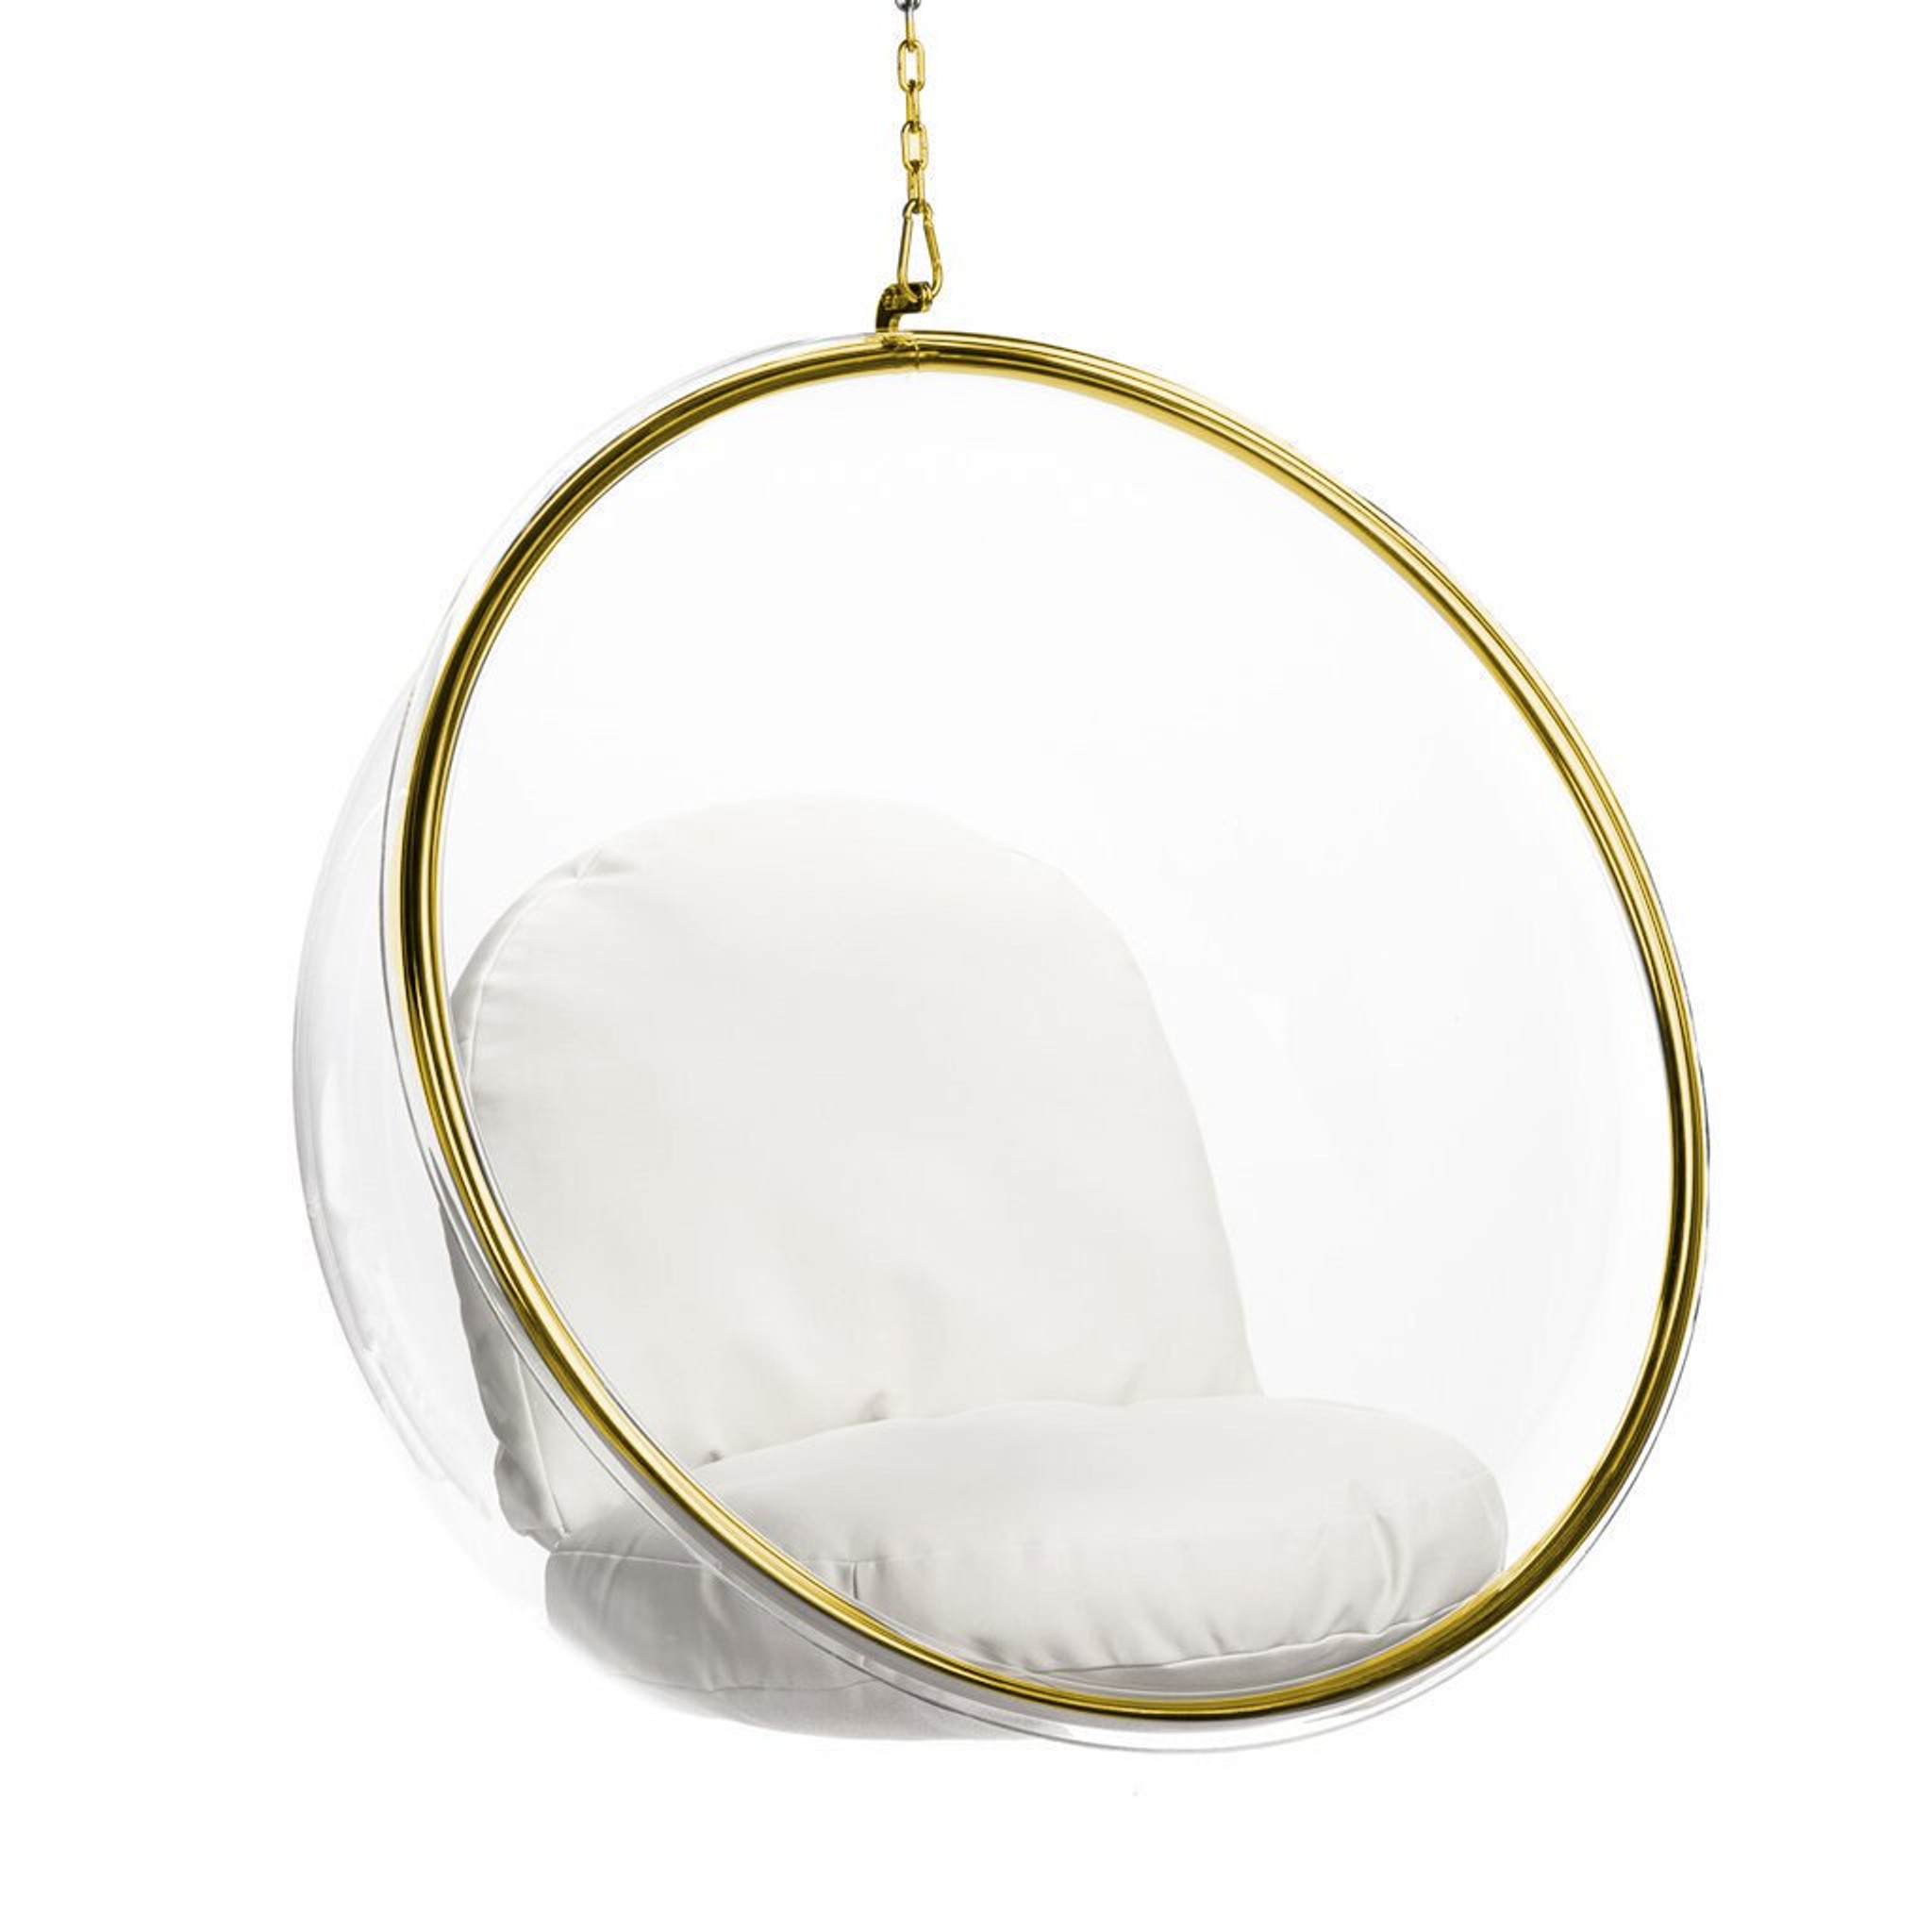 bubble chair for hanging with gold trim white and white cushion set clear acrylic lucite